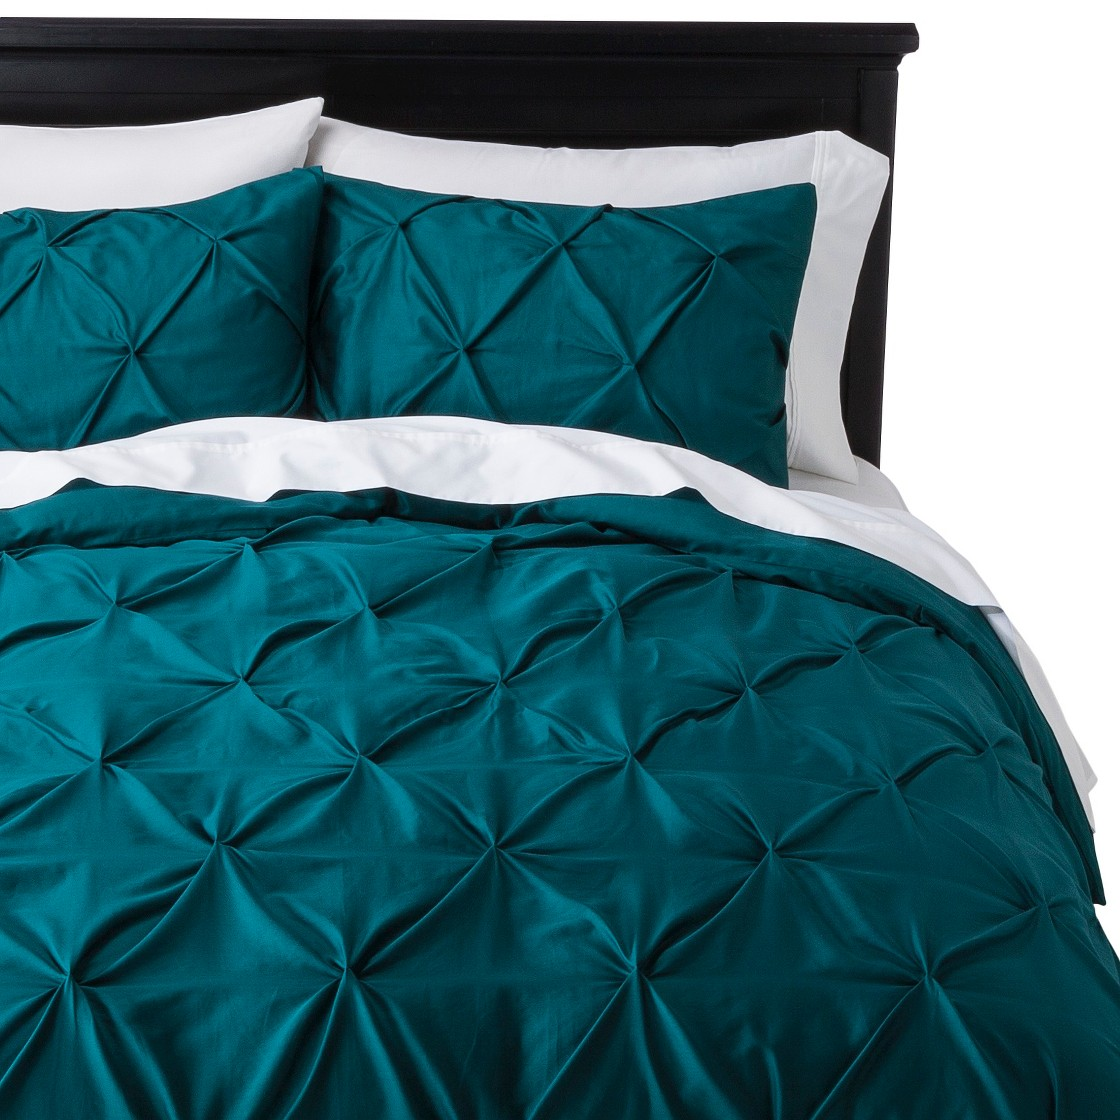 Peacock Bedding | Peacock Feather Comforter Set | Peacock Alley Linens